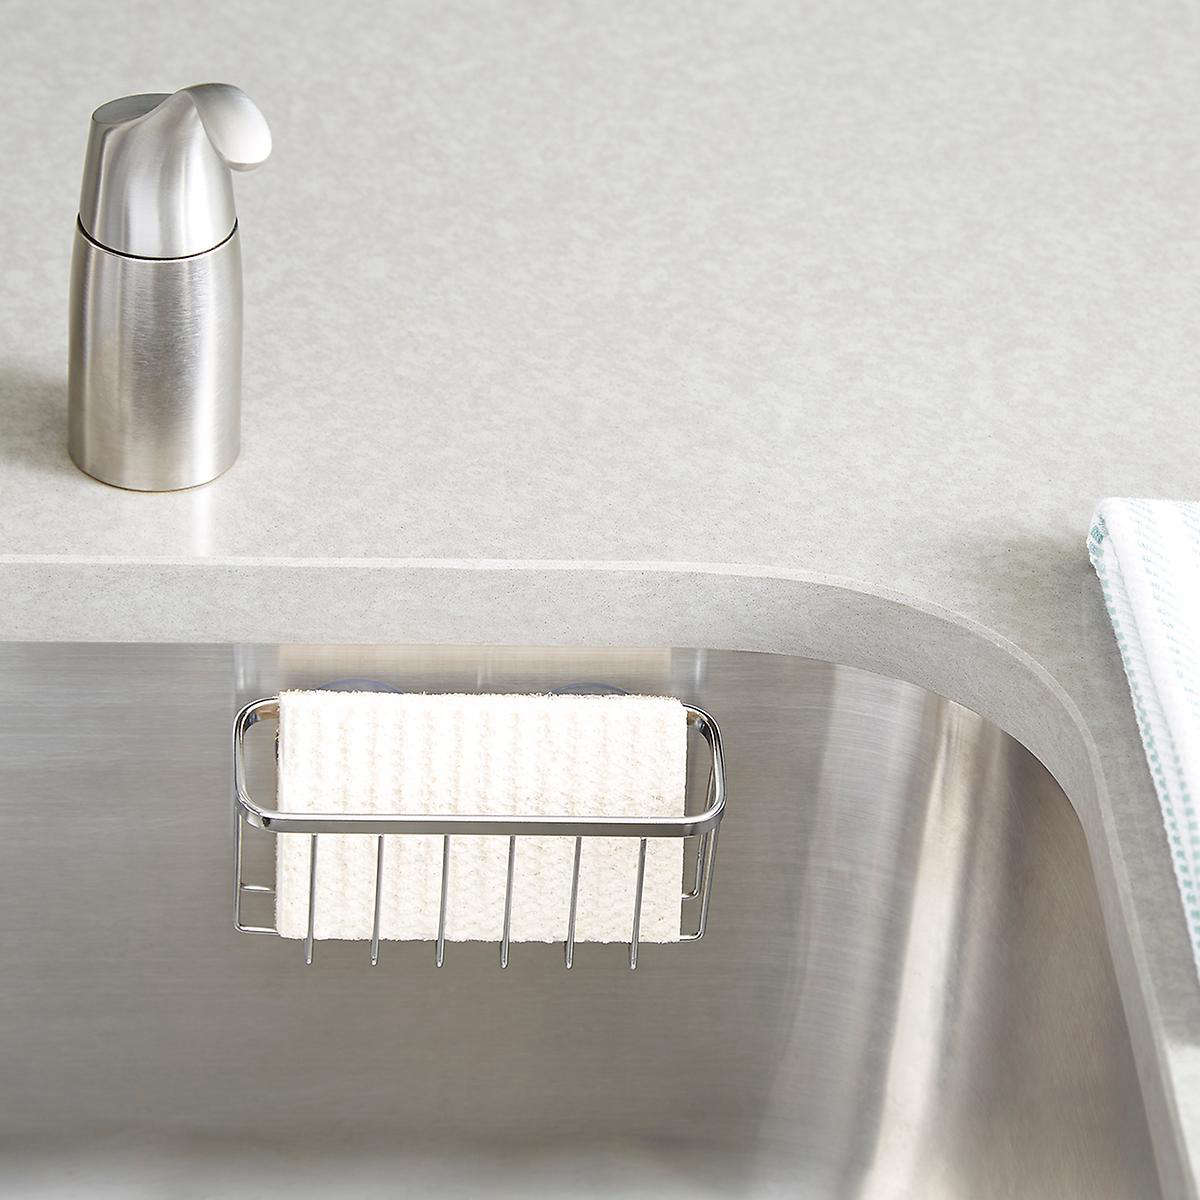 Another inexpensive sponge holder is the Stainless Steel Sunction Sink Center by iDesign; it's $6.99 at the Container Store.